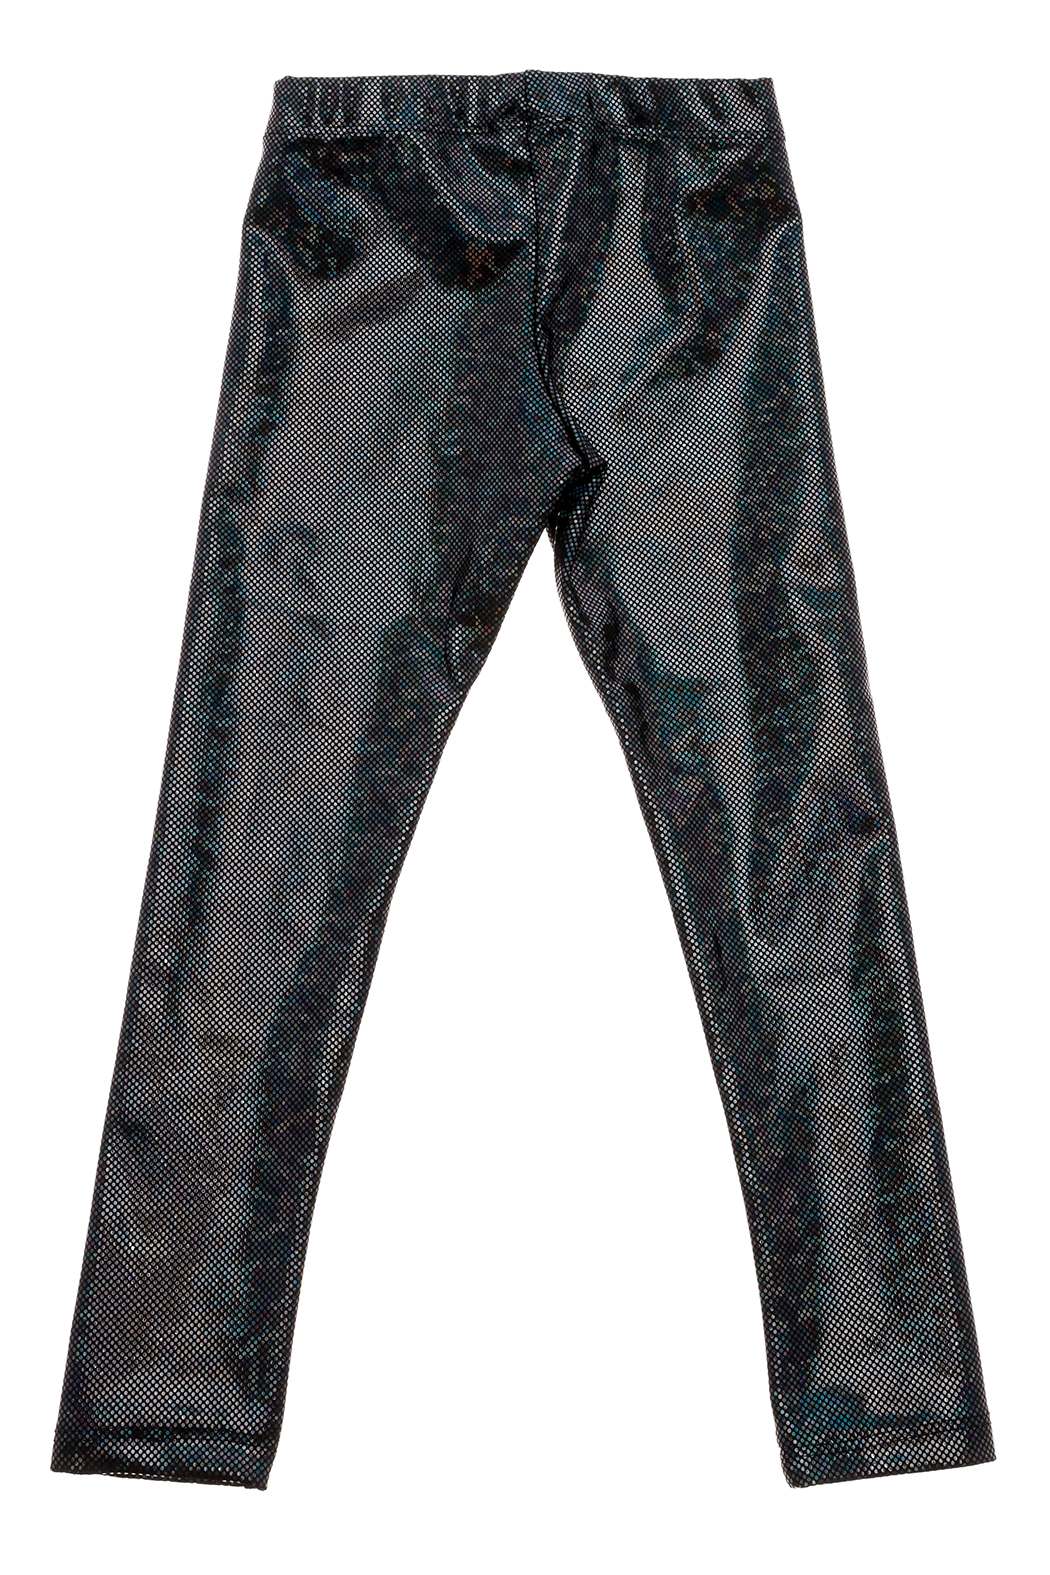 Rock Candy Ombre Metallic Leggings - Back Cropped Image